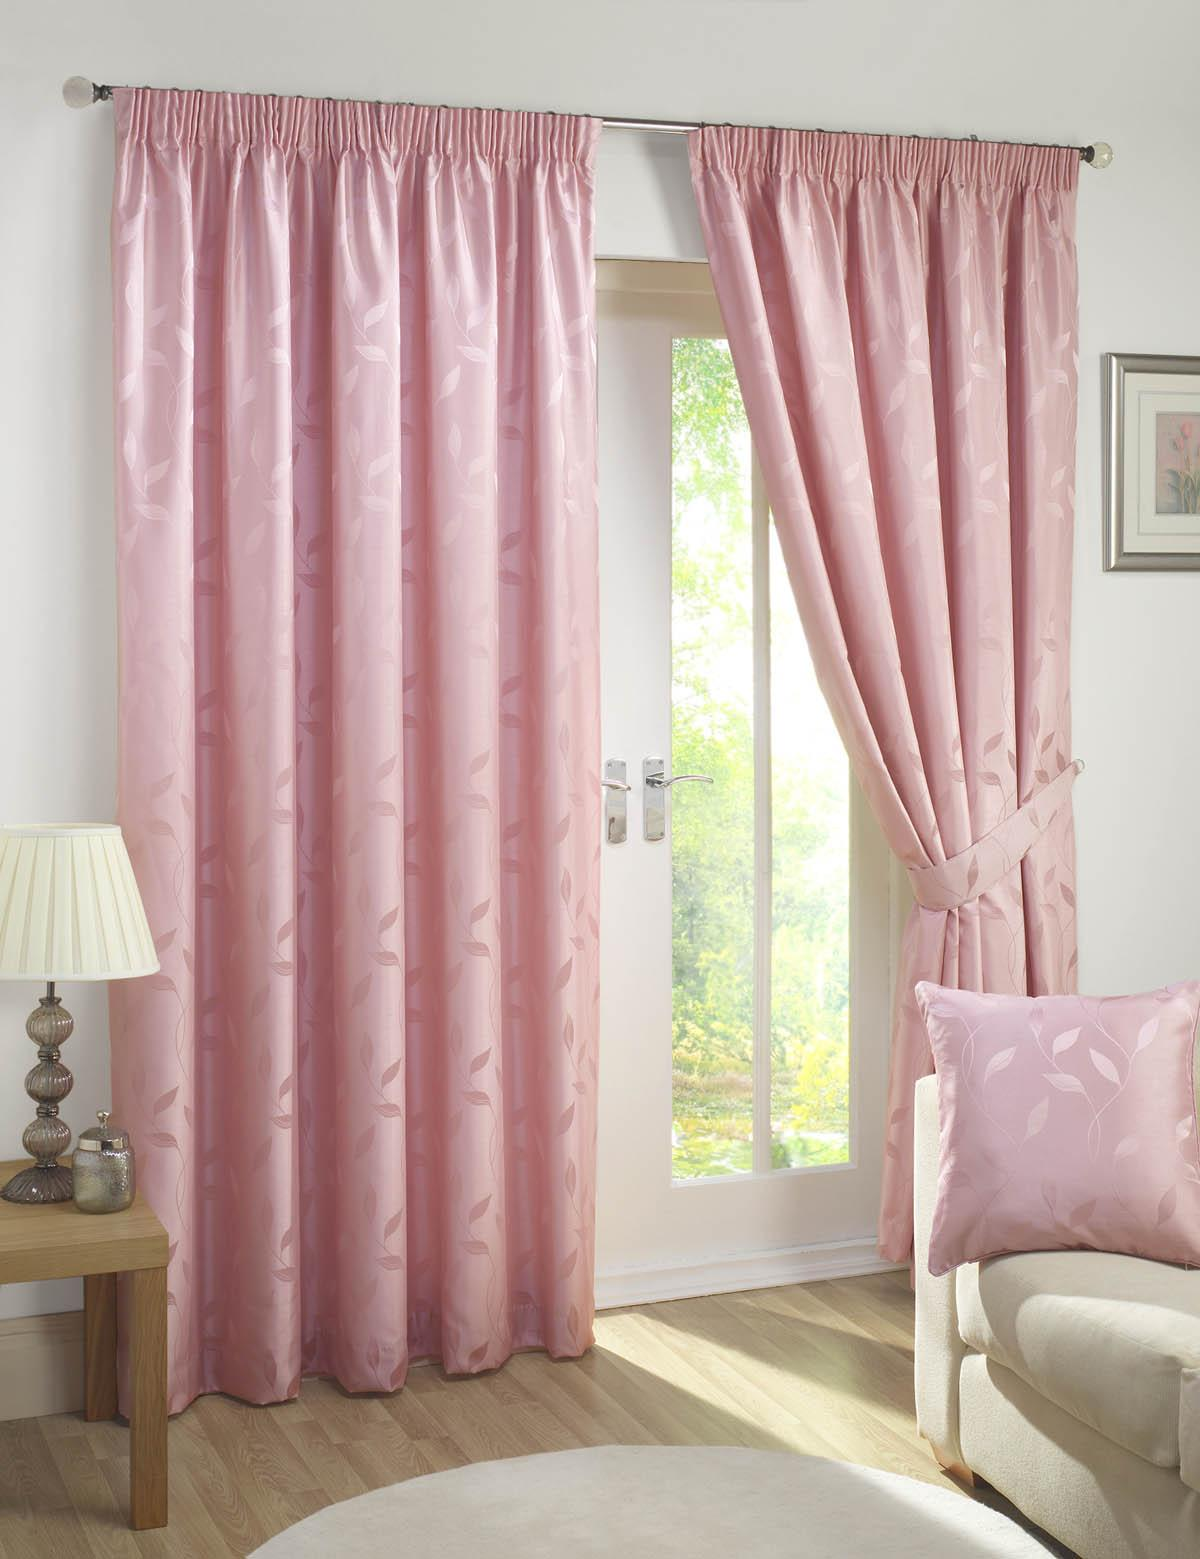 Buy Cheap Pink Bedroom Curtains Compare Home Textiles Prices For Best Uk Deals